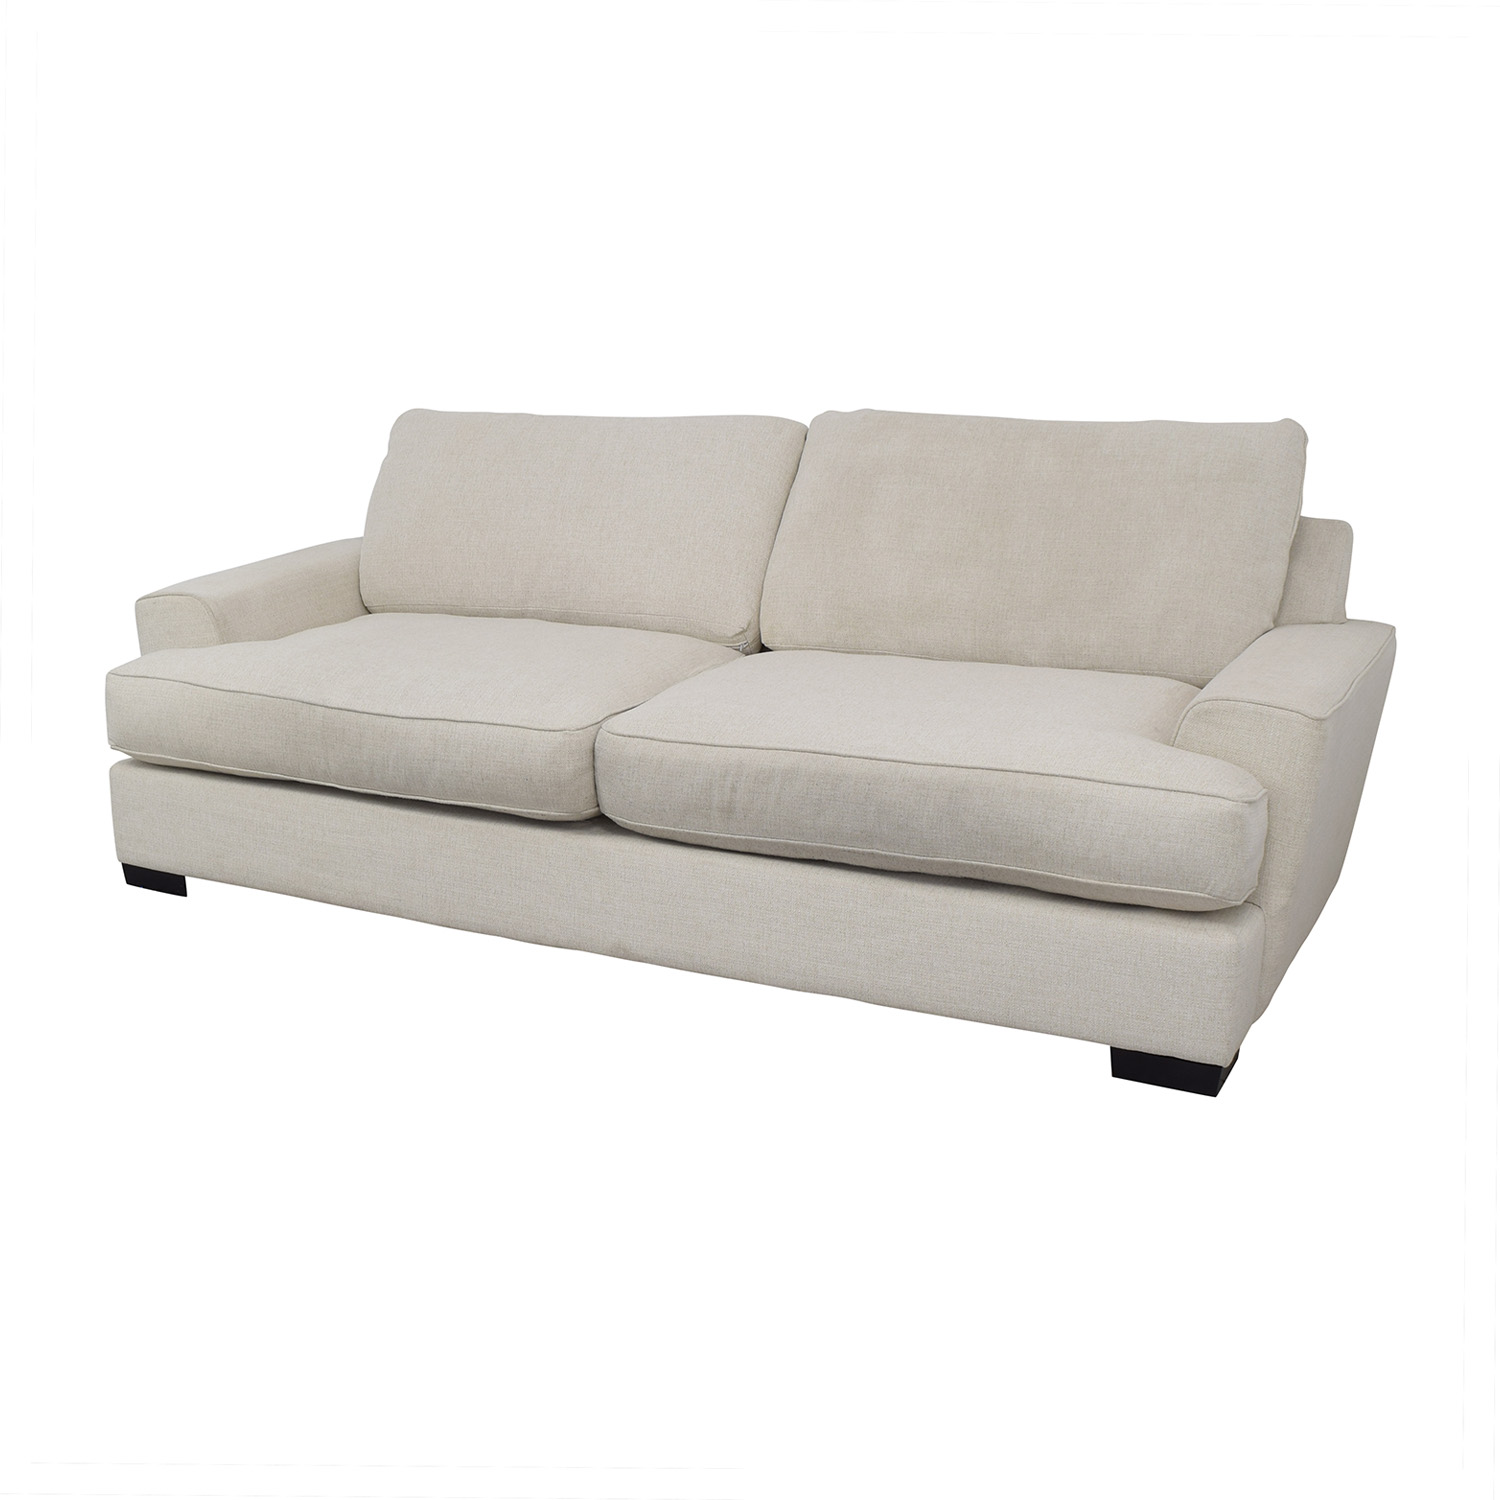 Macy's Macy's Ainsley Fabric Sofa nj